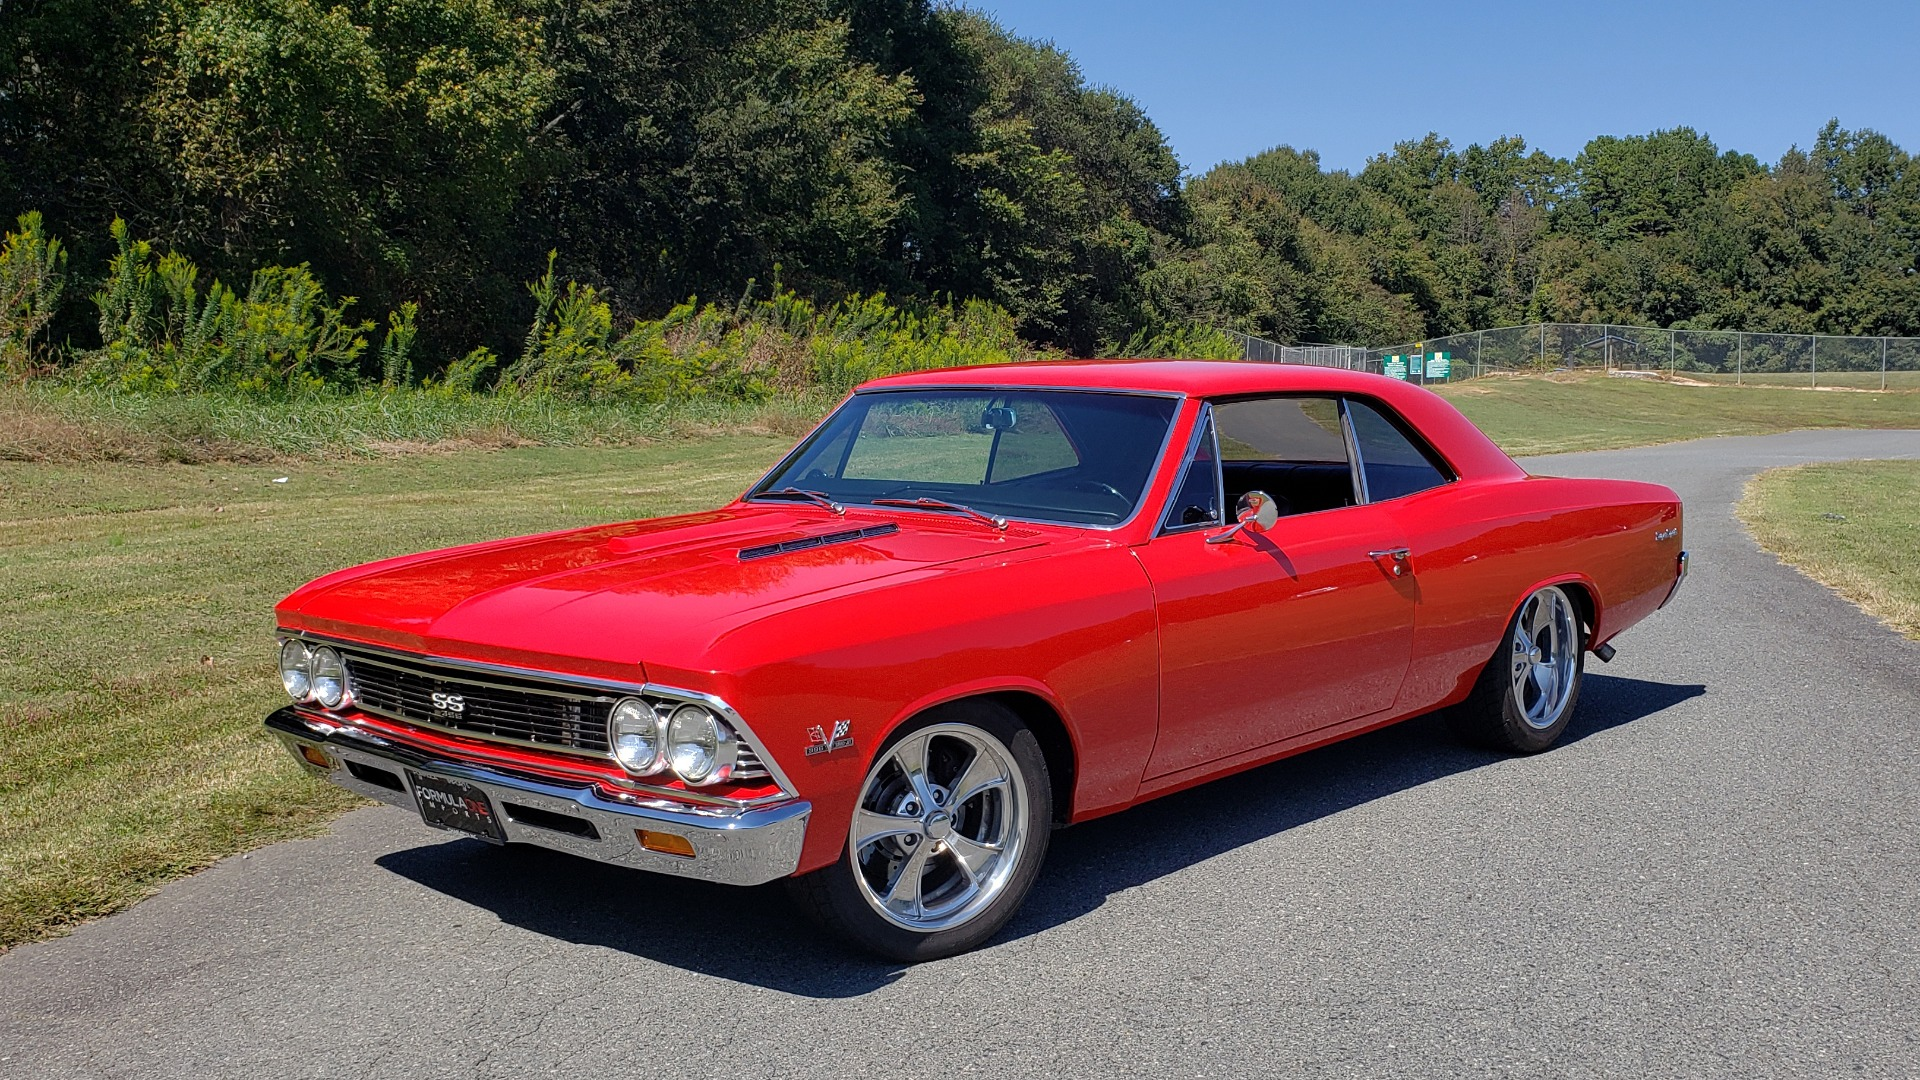 Used 1966 Chevrolet CHEVELLE SS 396 CUSTOM RESTO-MOD / 4-SPEED MANUAL / 12-BOLT REAR for sale $74,999 at Formula Imports in Charlotte NC 28227 1